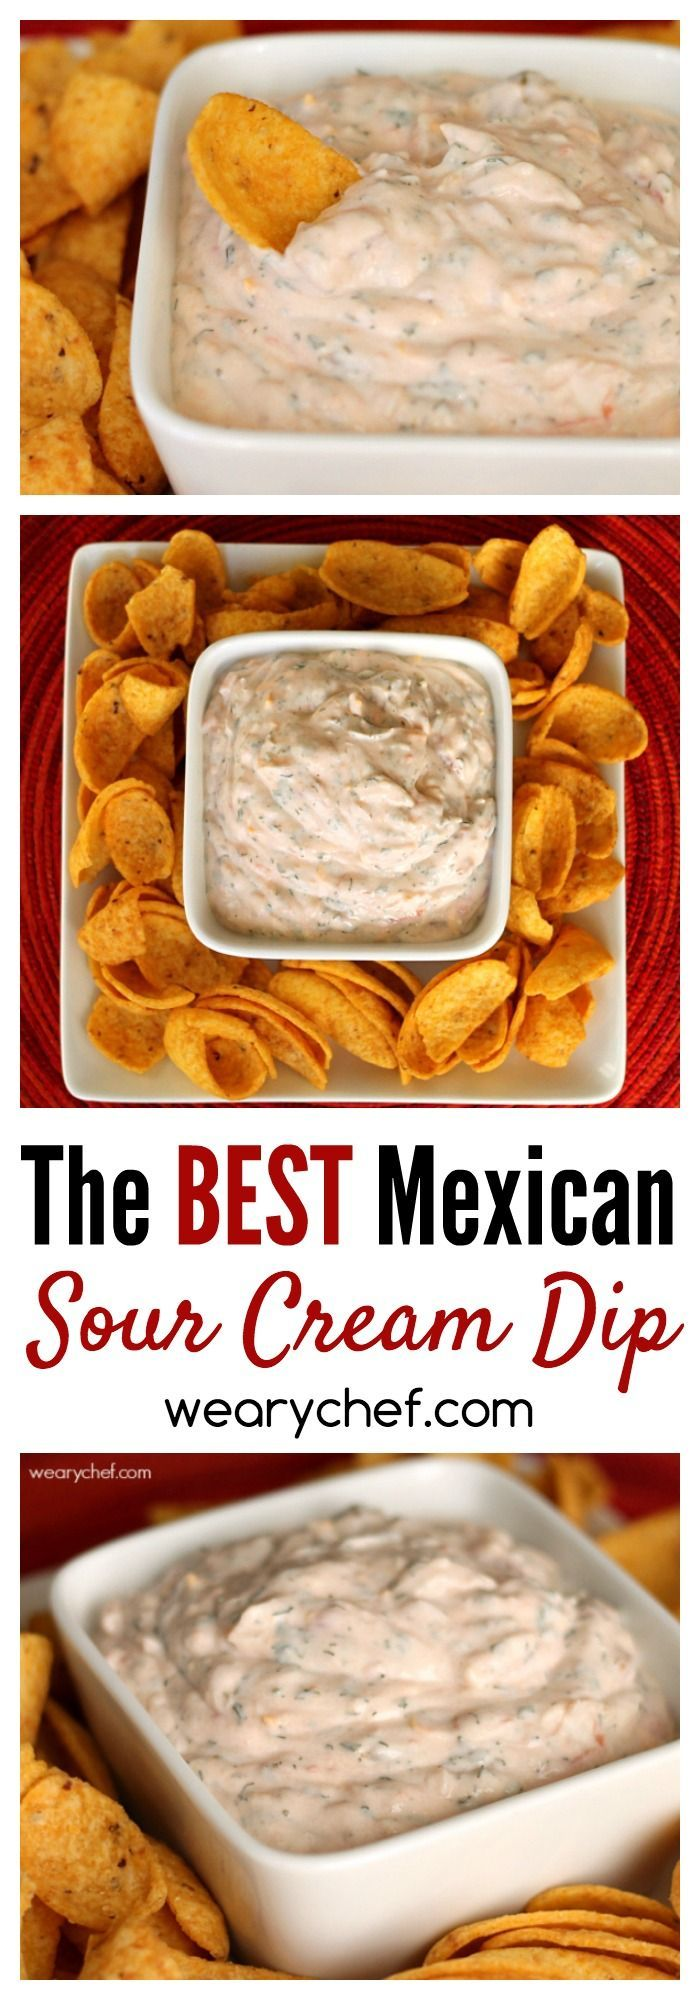 awesome This crowd-pleasing Mexican Sour Cream Dip Recipe is perfect for last minute gue...